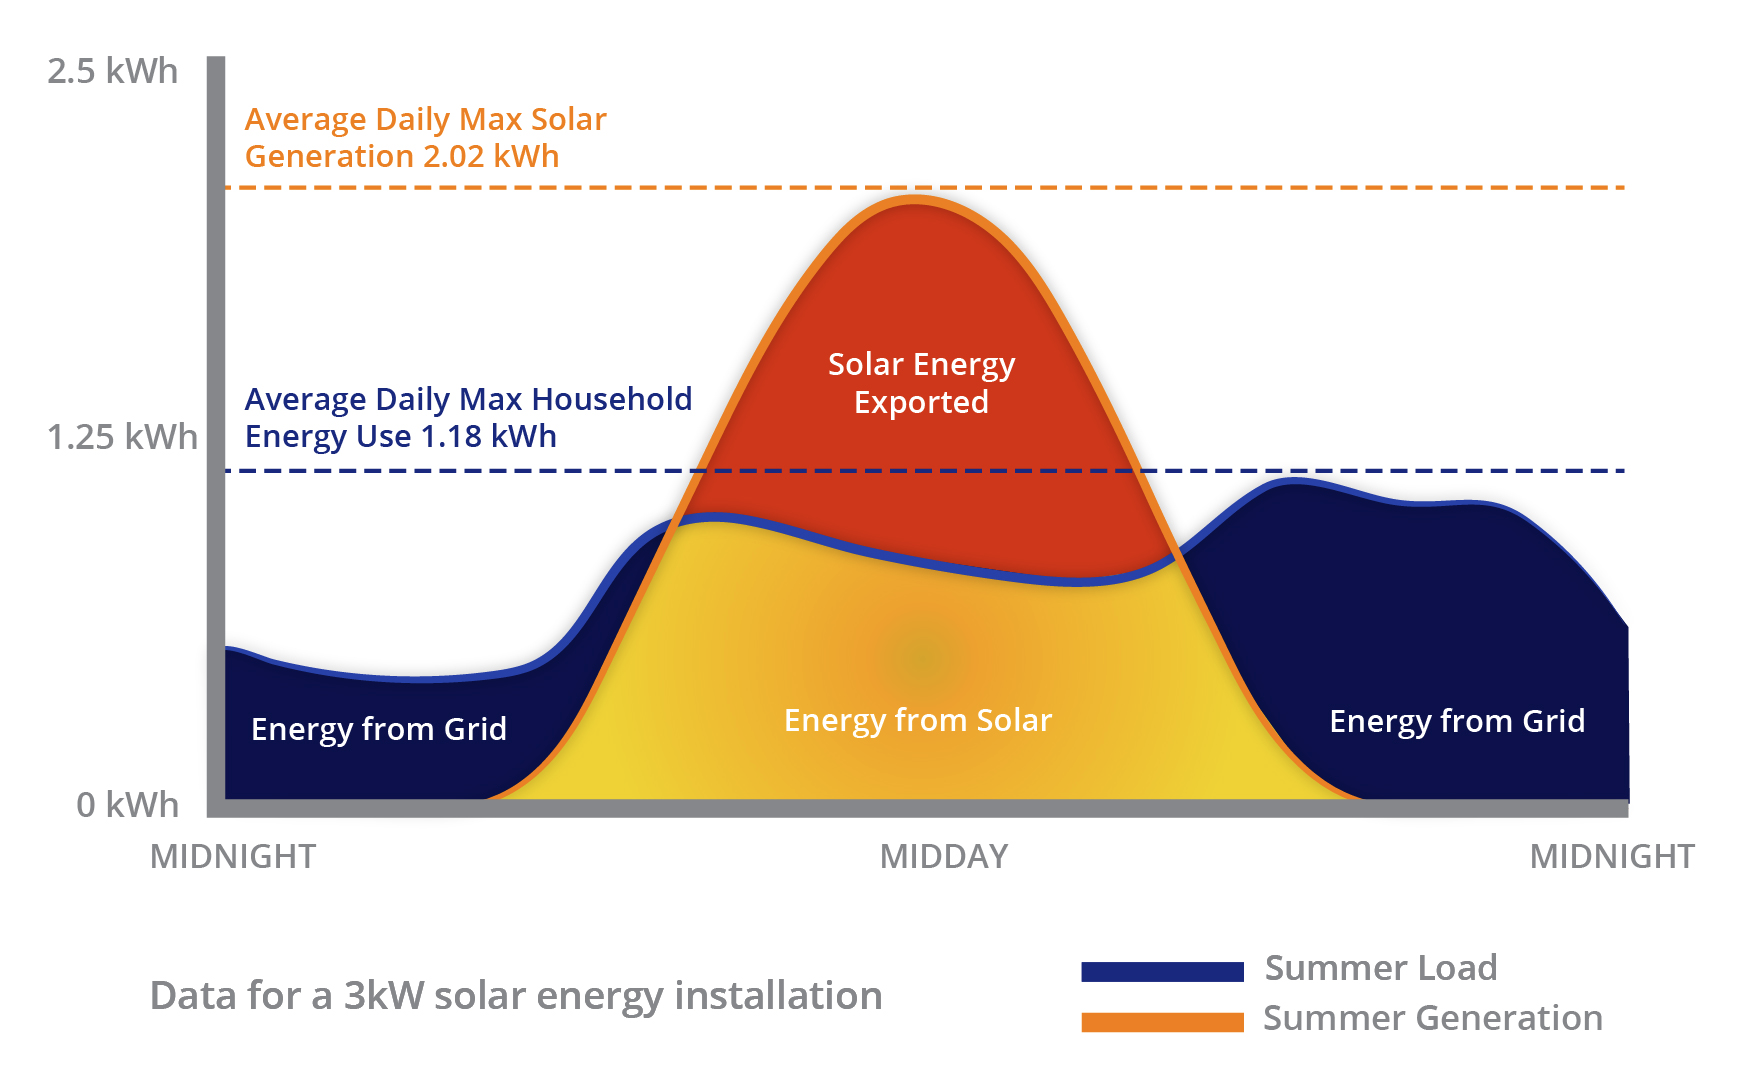 Data for a 3kW solar energy installation